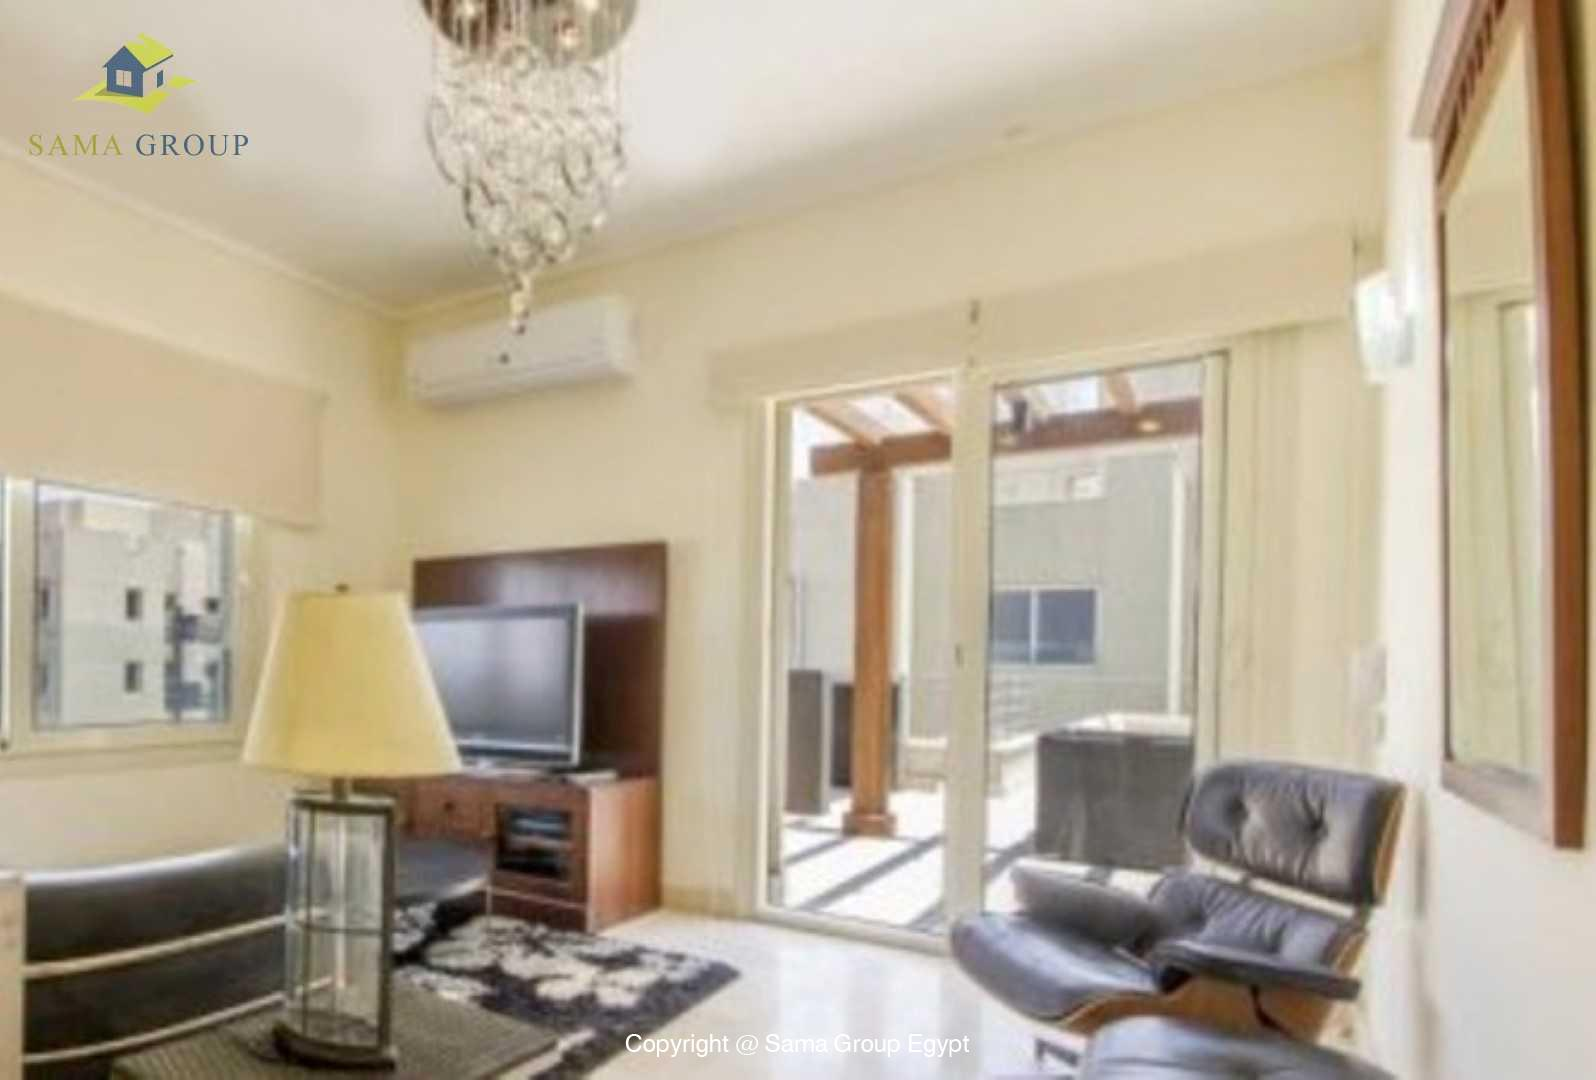 Penthouse For Rent In New Cairo The Village,Modern Furnished,Penthouse NO #9